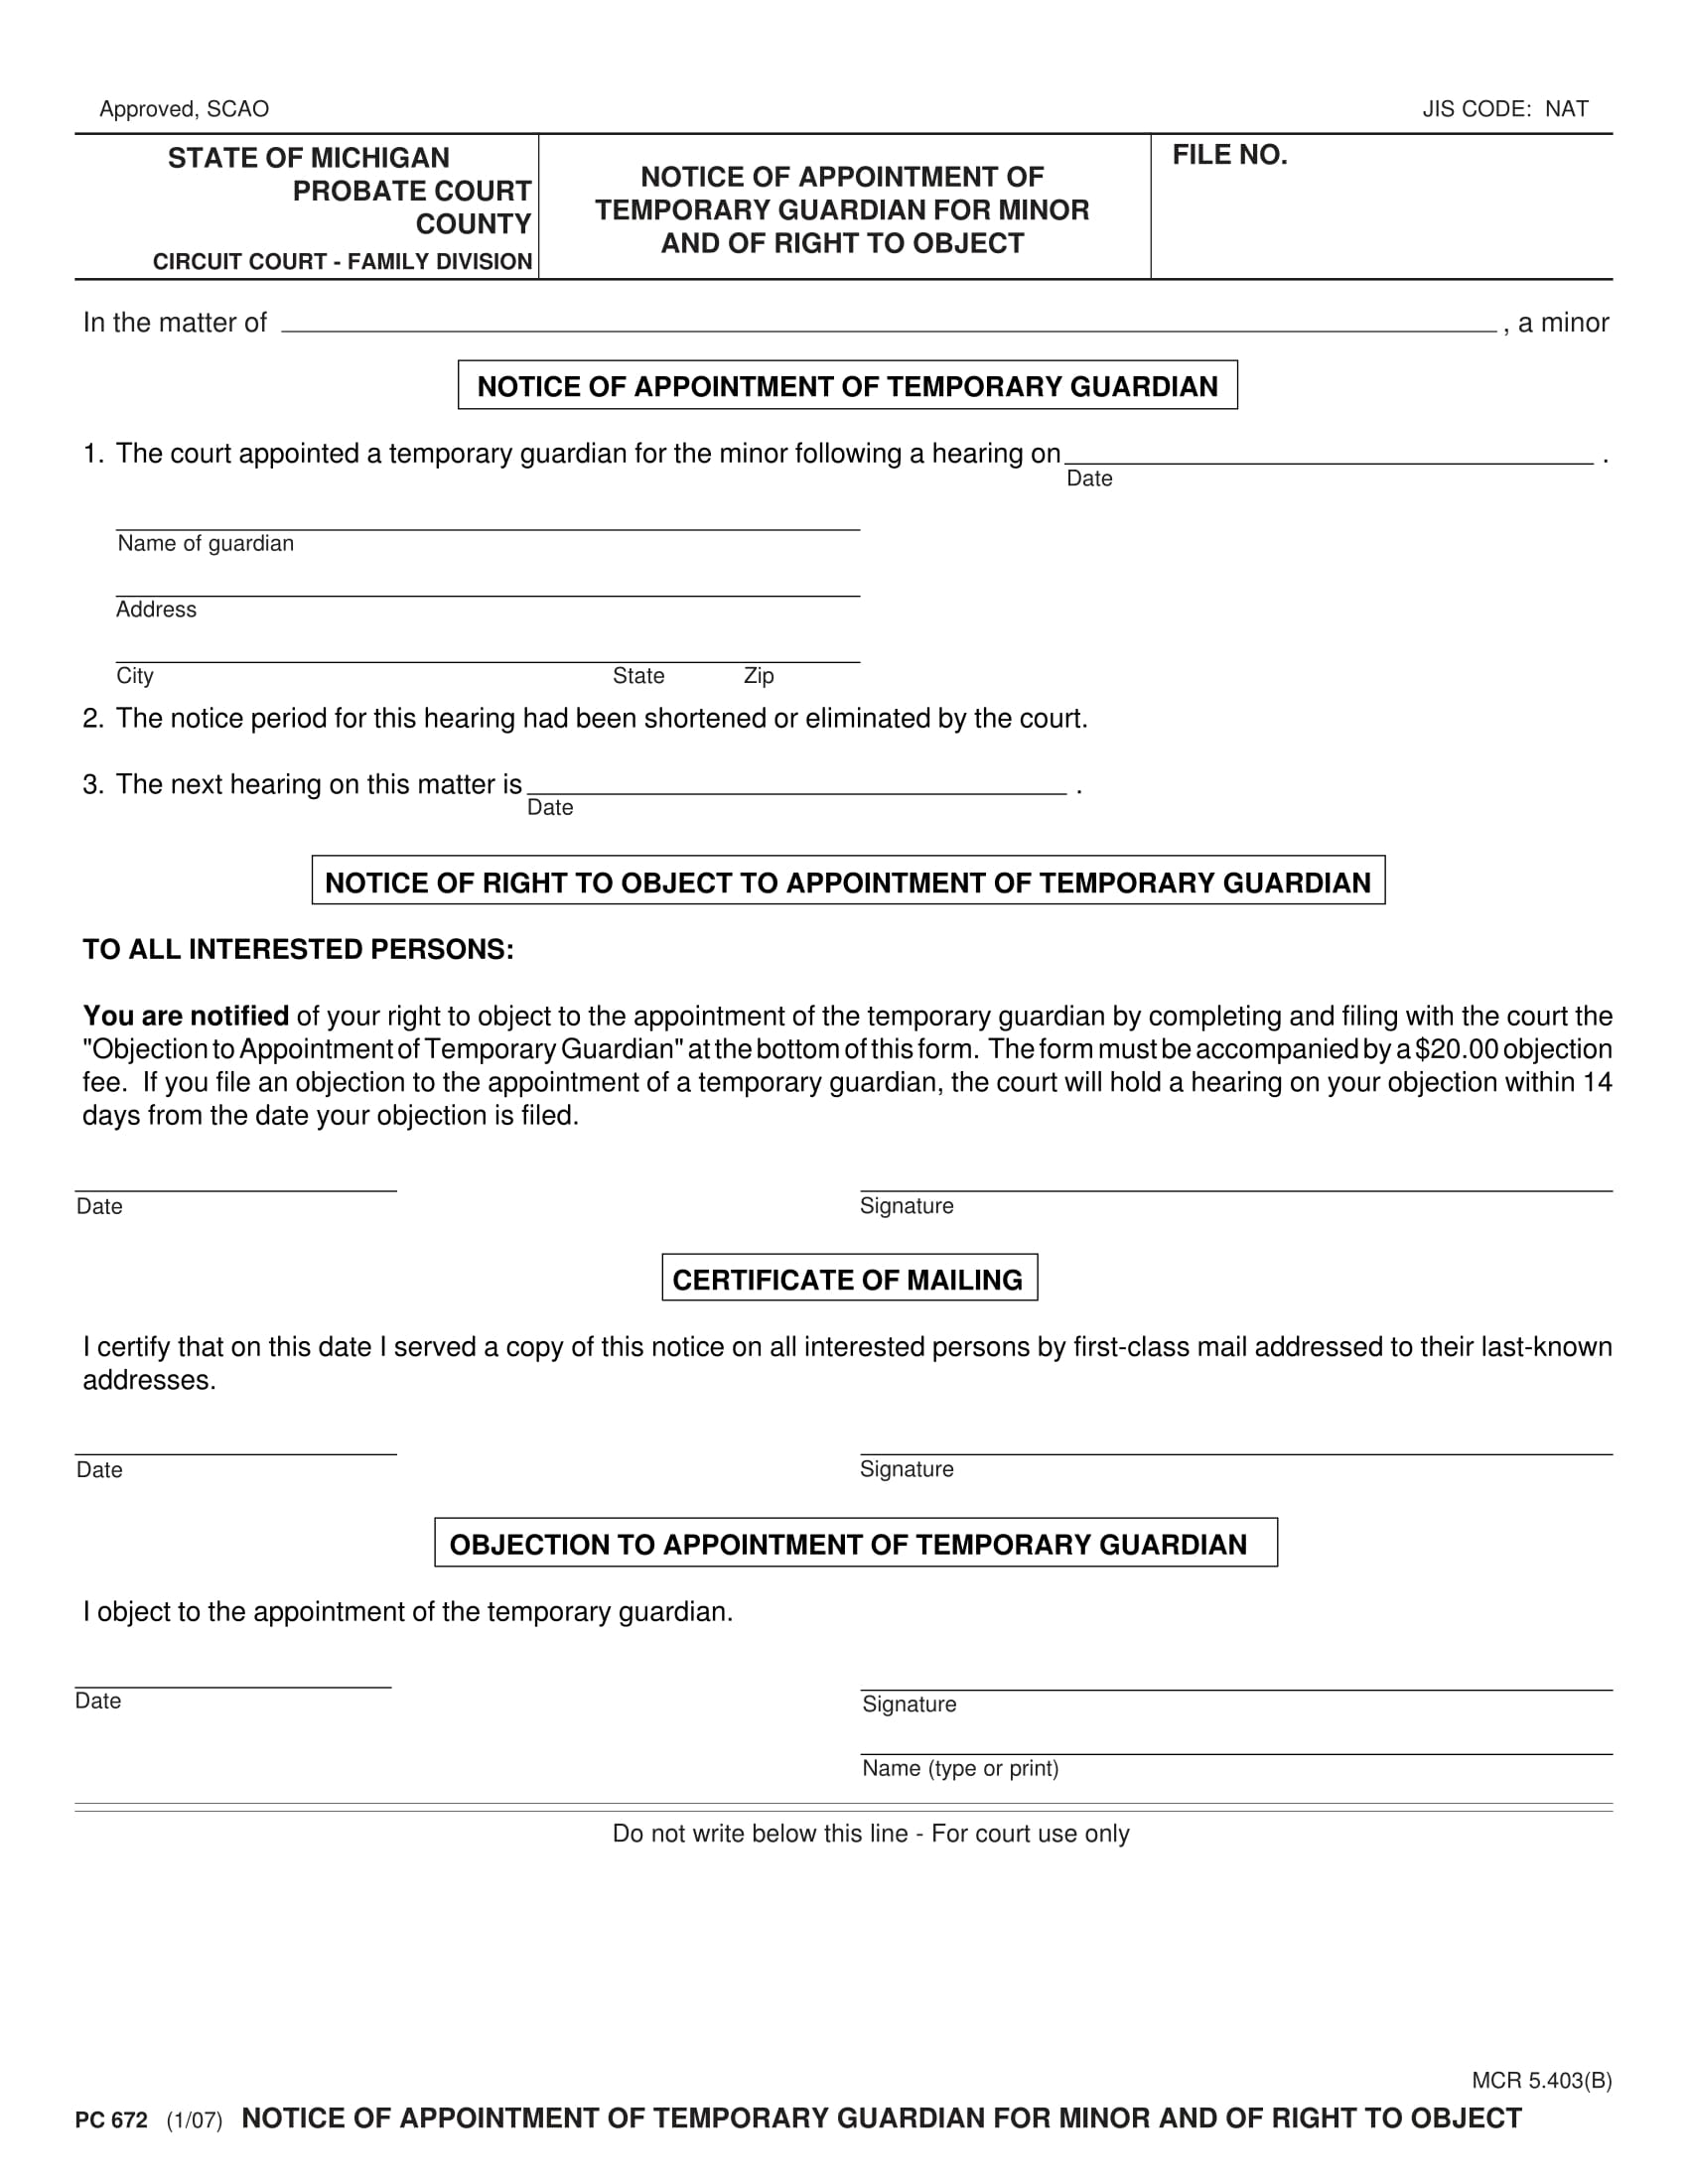 guardianship notice of appointment 1